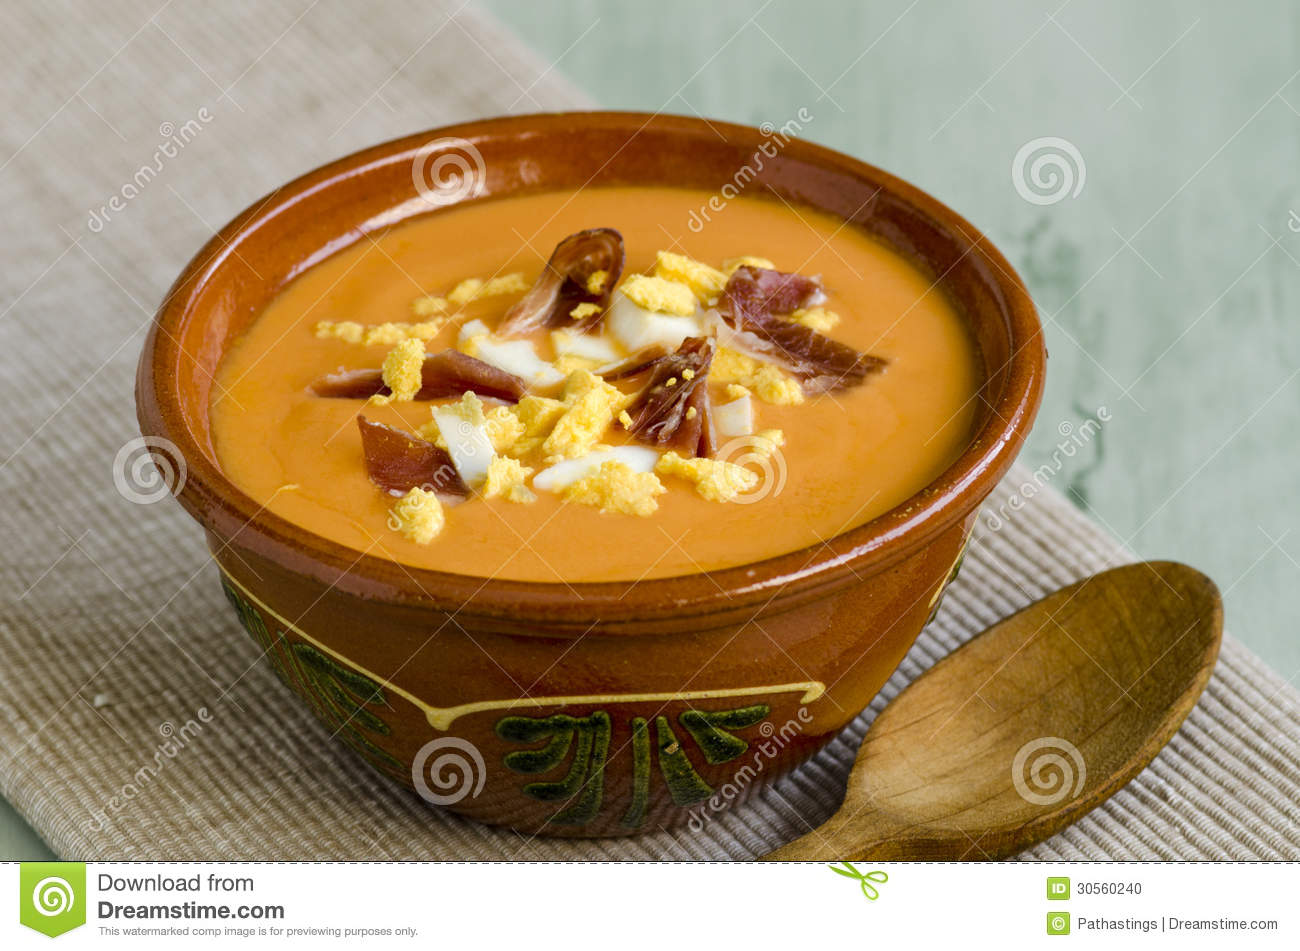 Spanish cuisune salmorejo stock photo image 30560240 for Andalusia cuisine